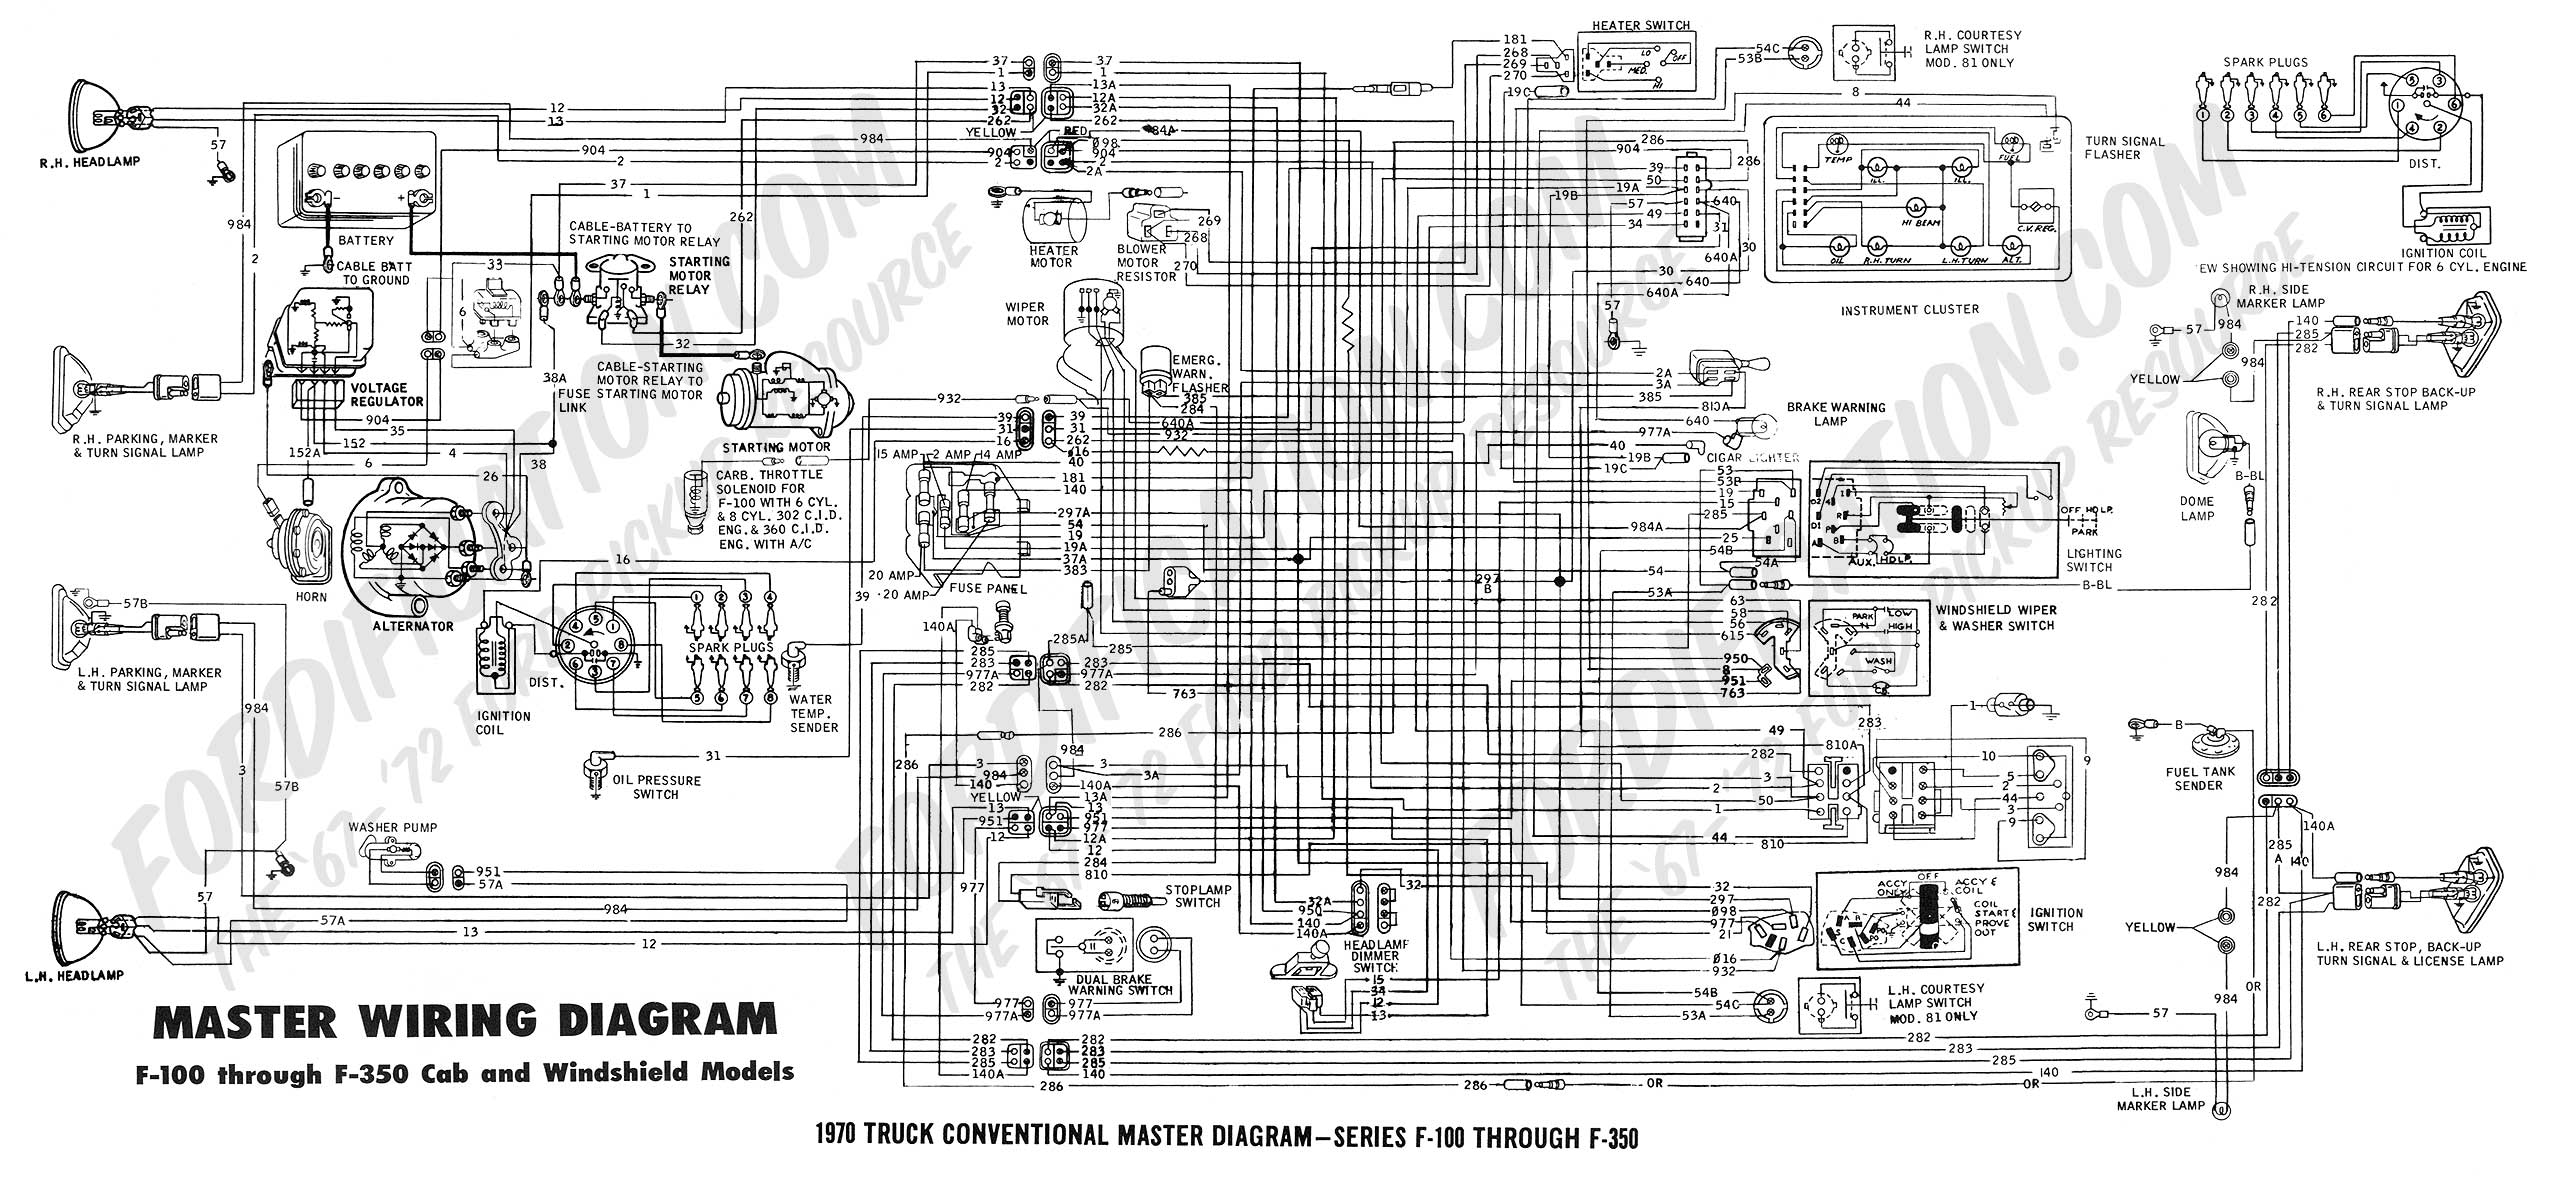 2ryja 1970 Ford Charging Voltage Regulator It Won T Start on 1958 thunderbird wiring diagram